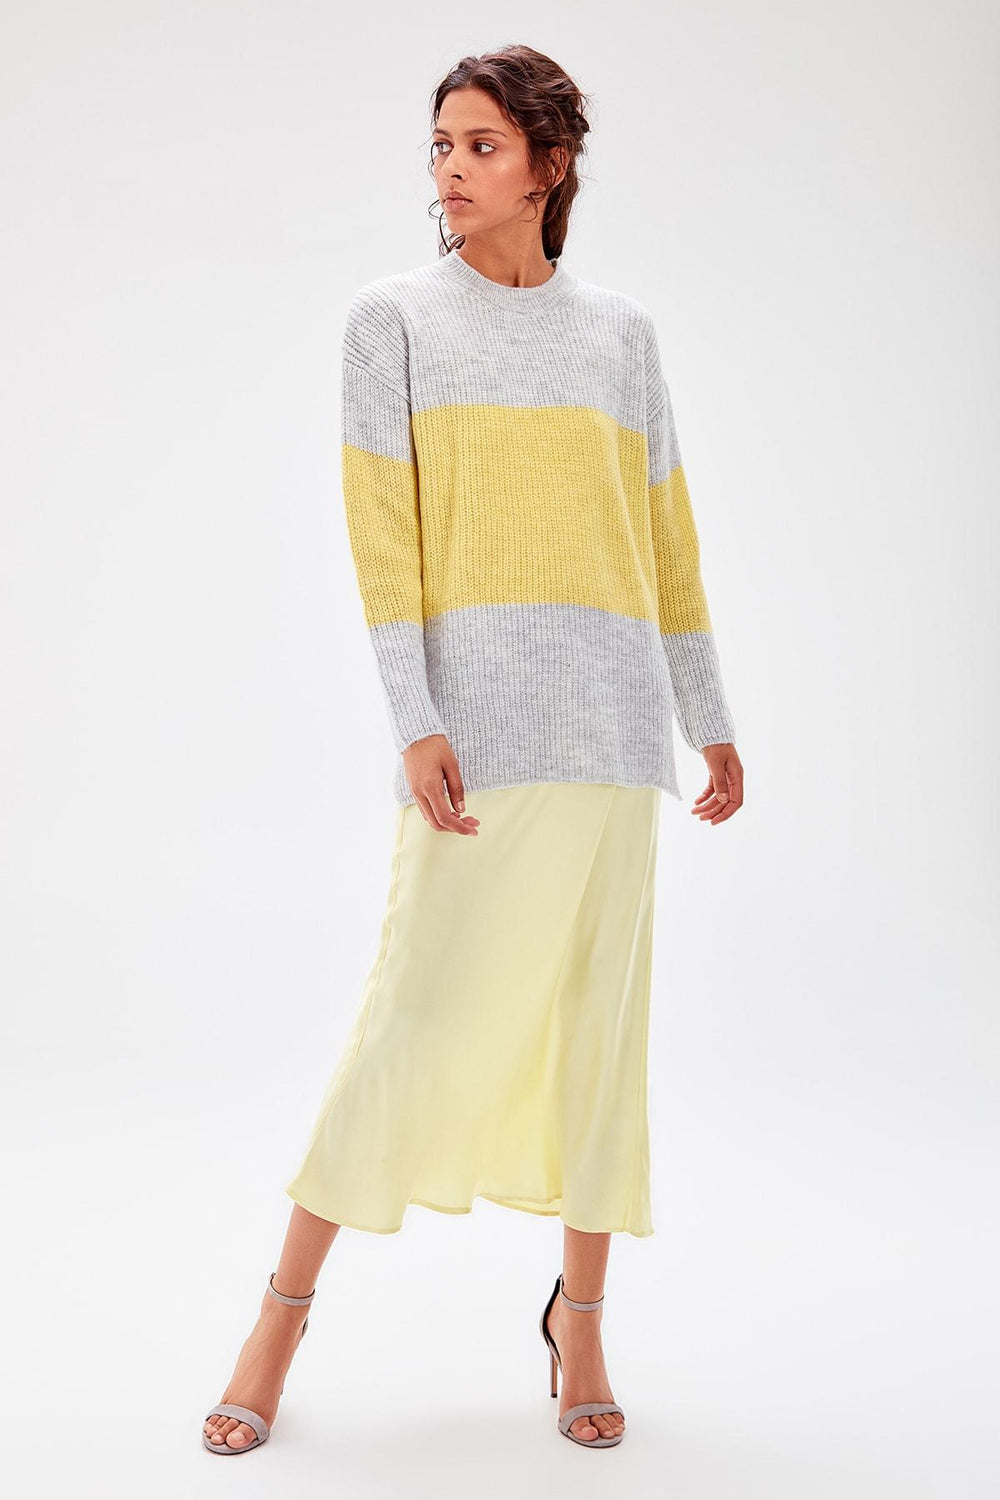 Gray Colorblock Sweater - Top Maxy